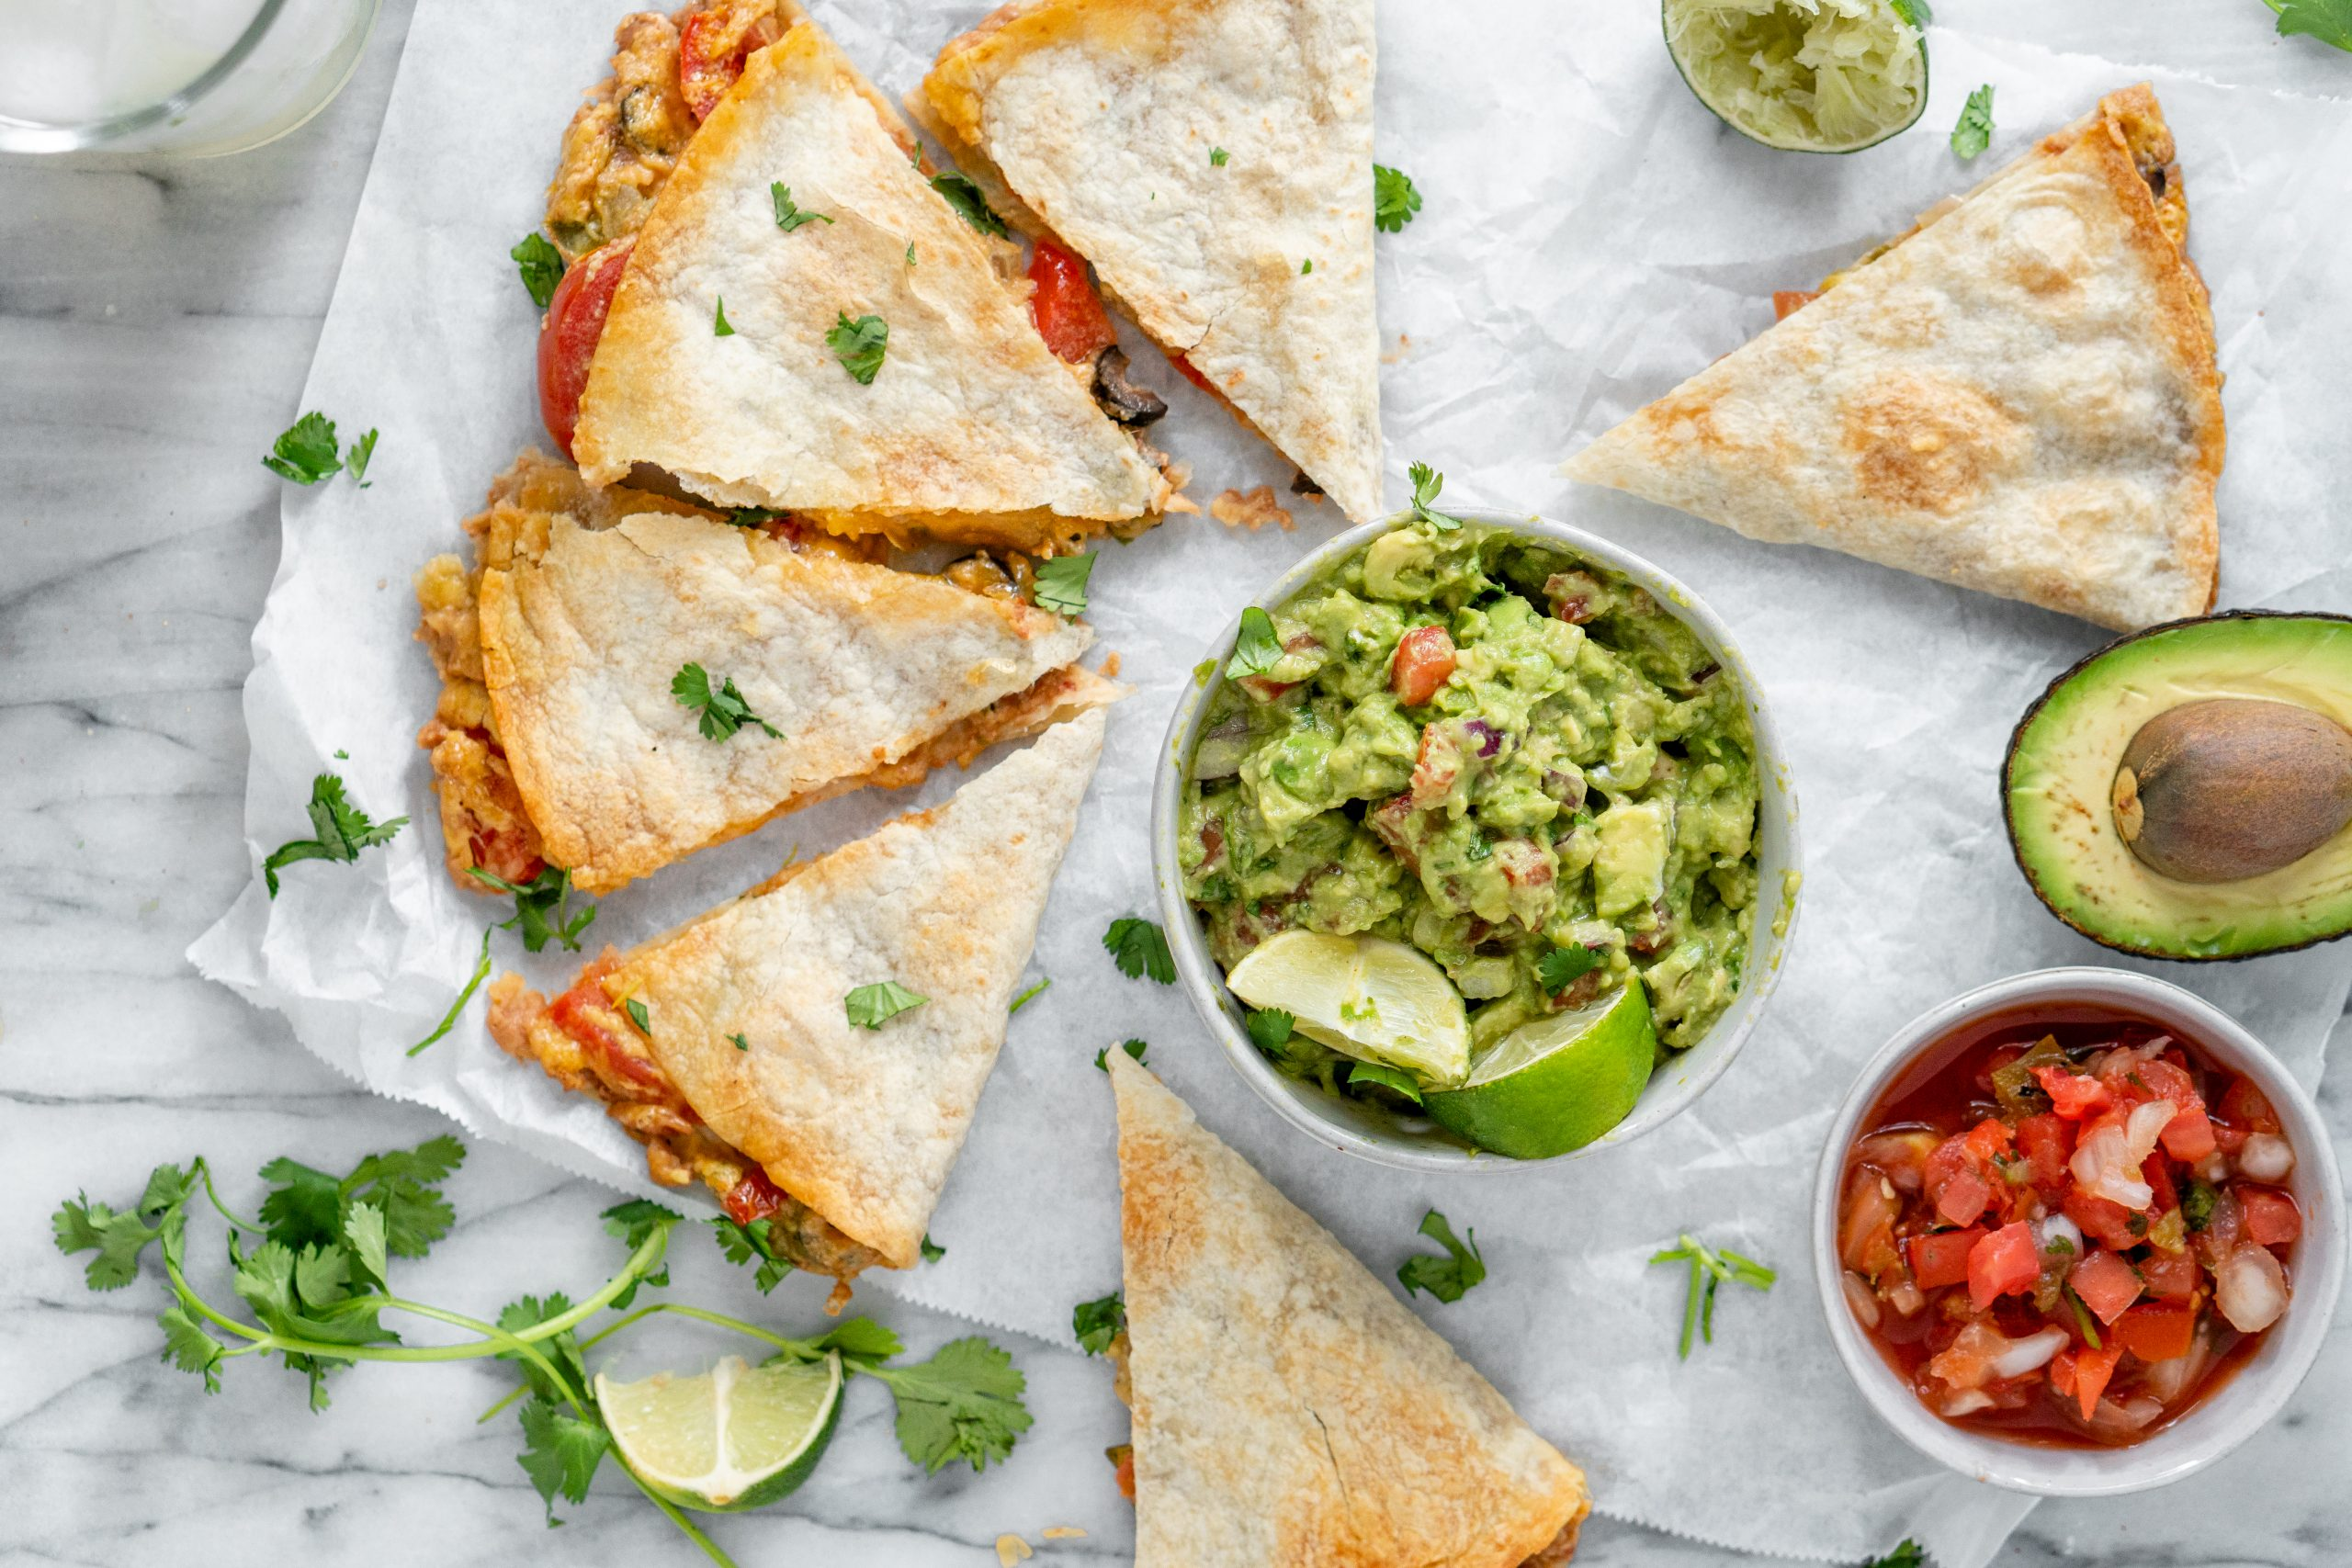 7 Layer Quesadilla pictured with guacamole and salsa